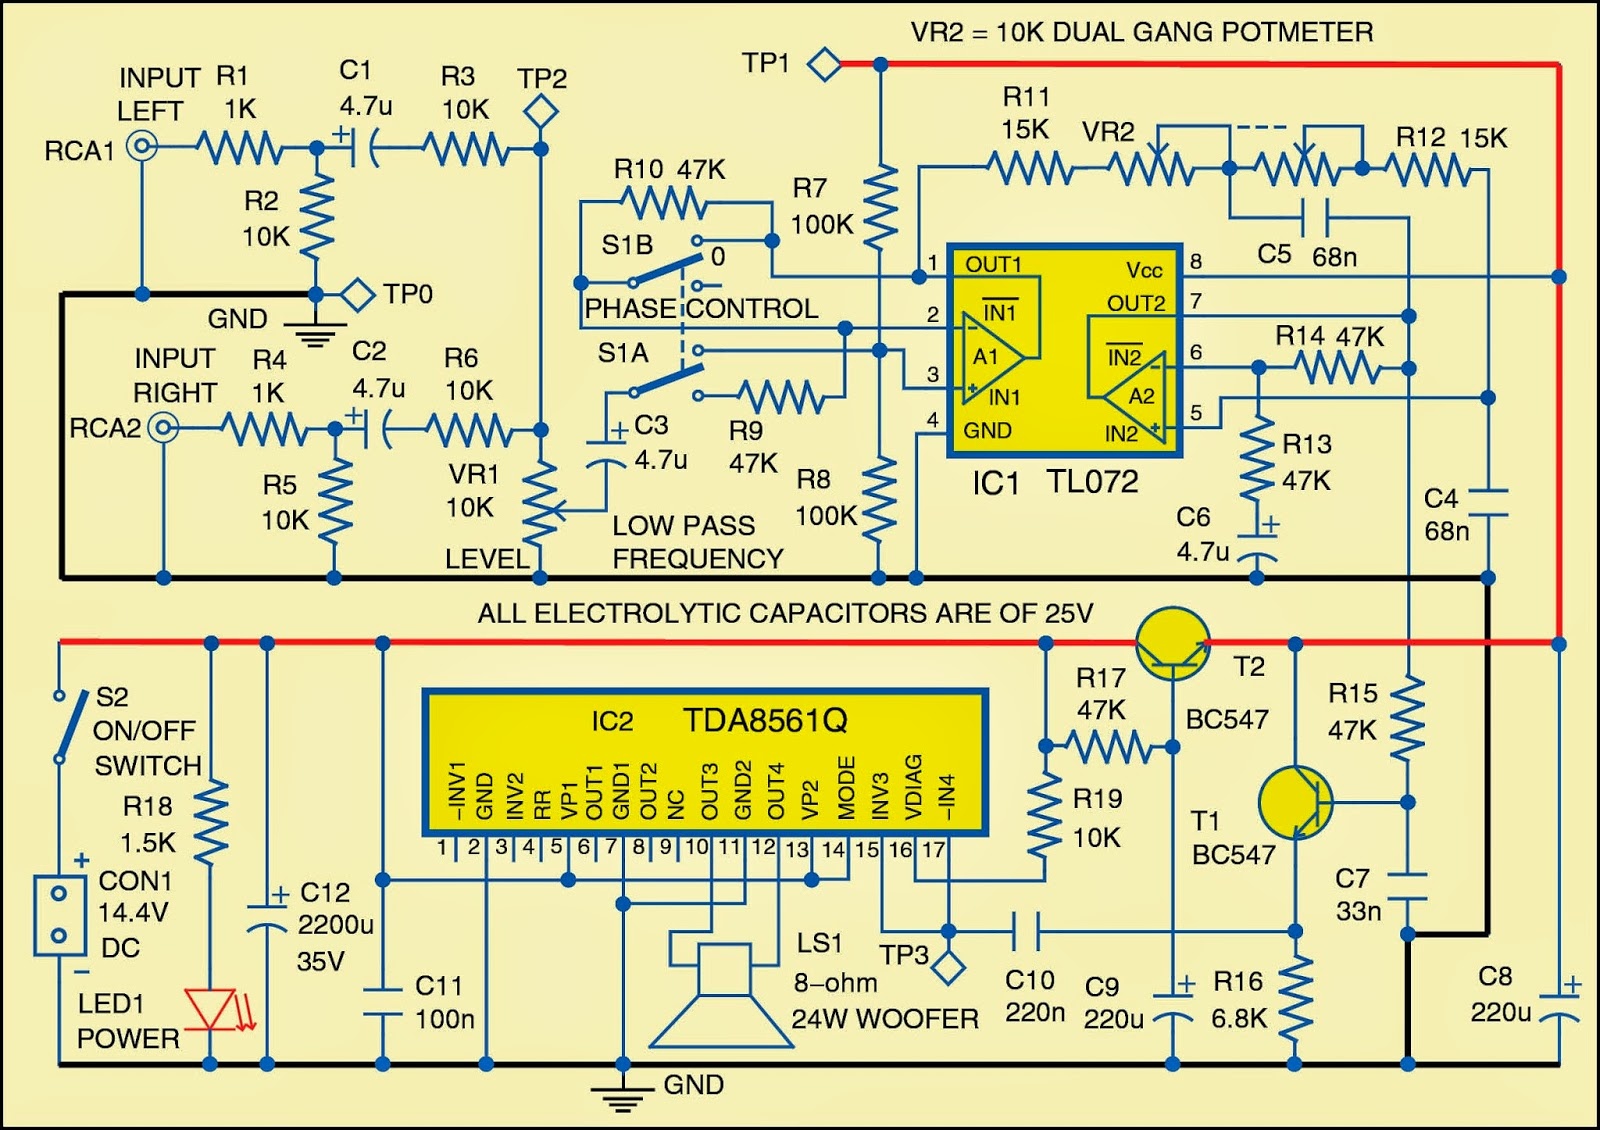 subwoofer for cars circuit diagram electronic circuits diagram circuit diagram of the subwoofer for cars [ 1600 x 1130 Pixel ]